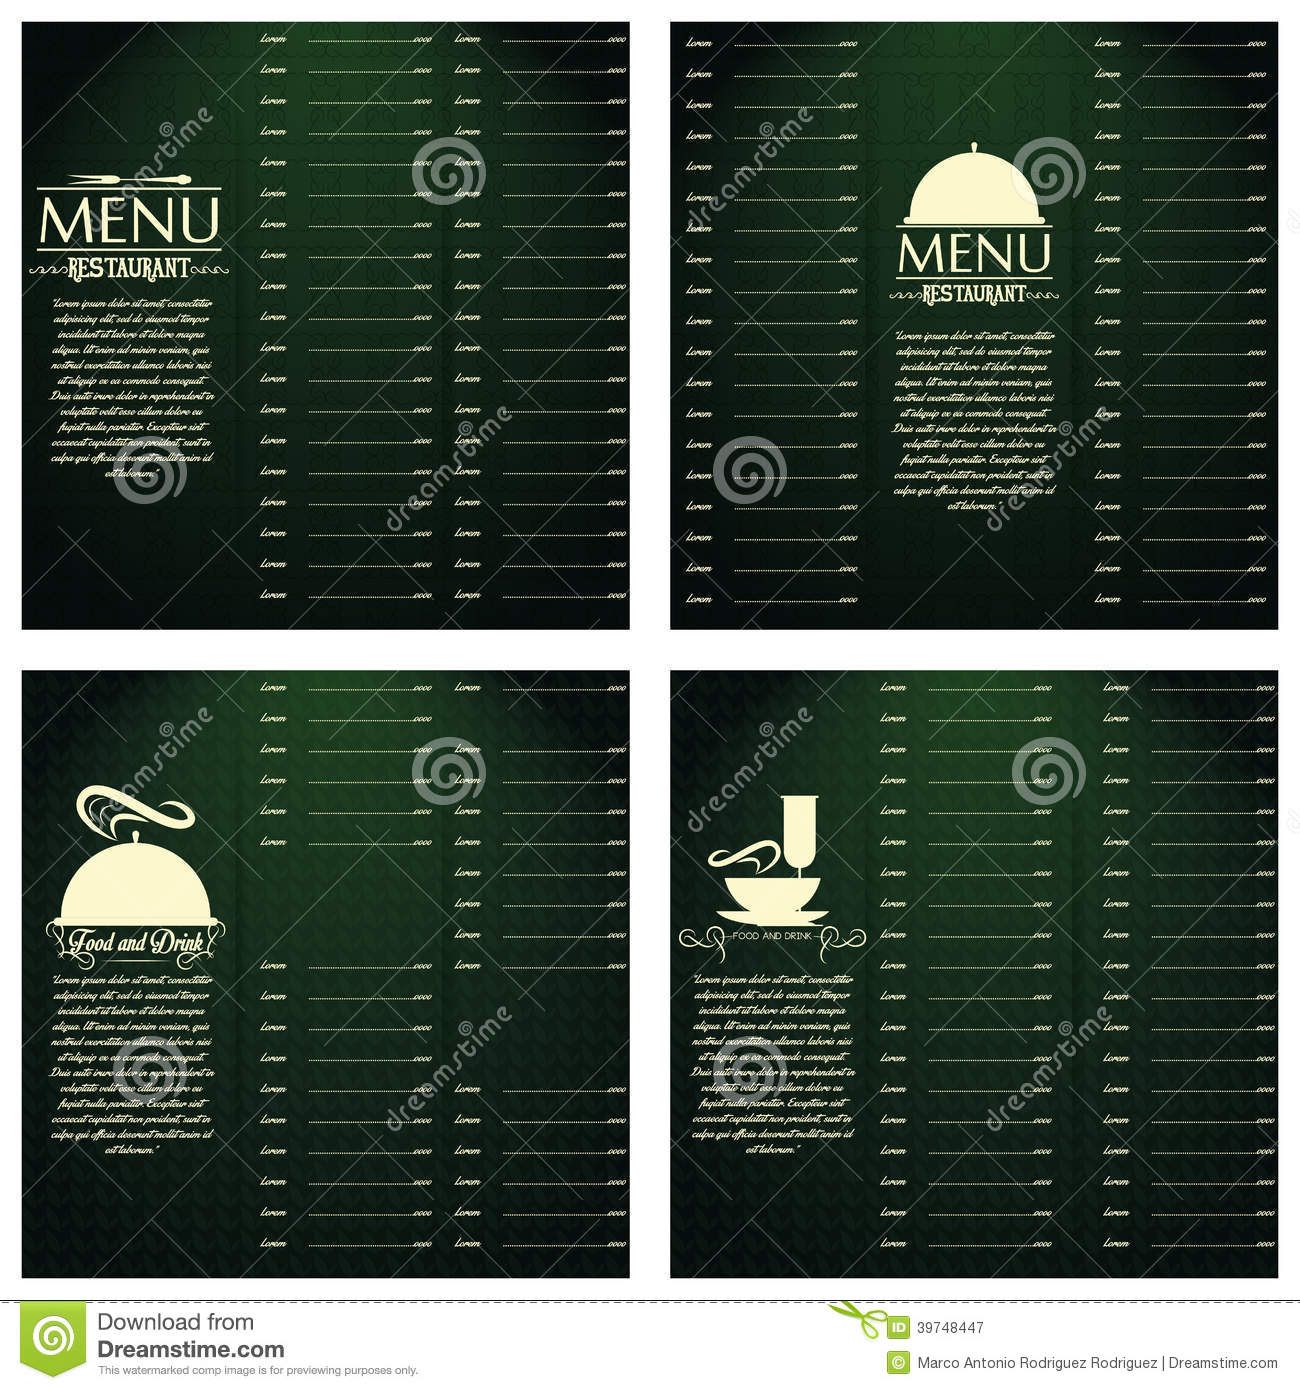 Restaurant Menu Cards Design Template Editable Stock Vector  Image 39748447